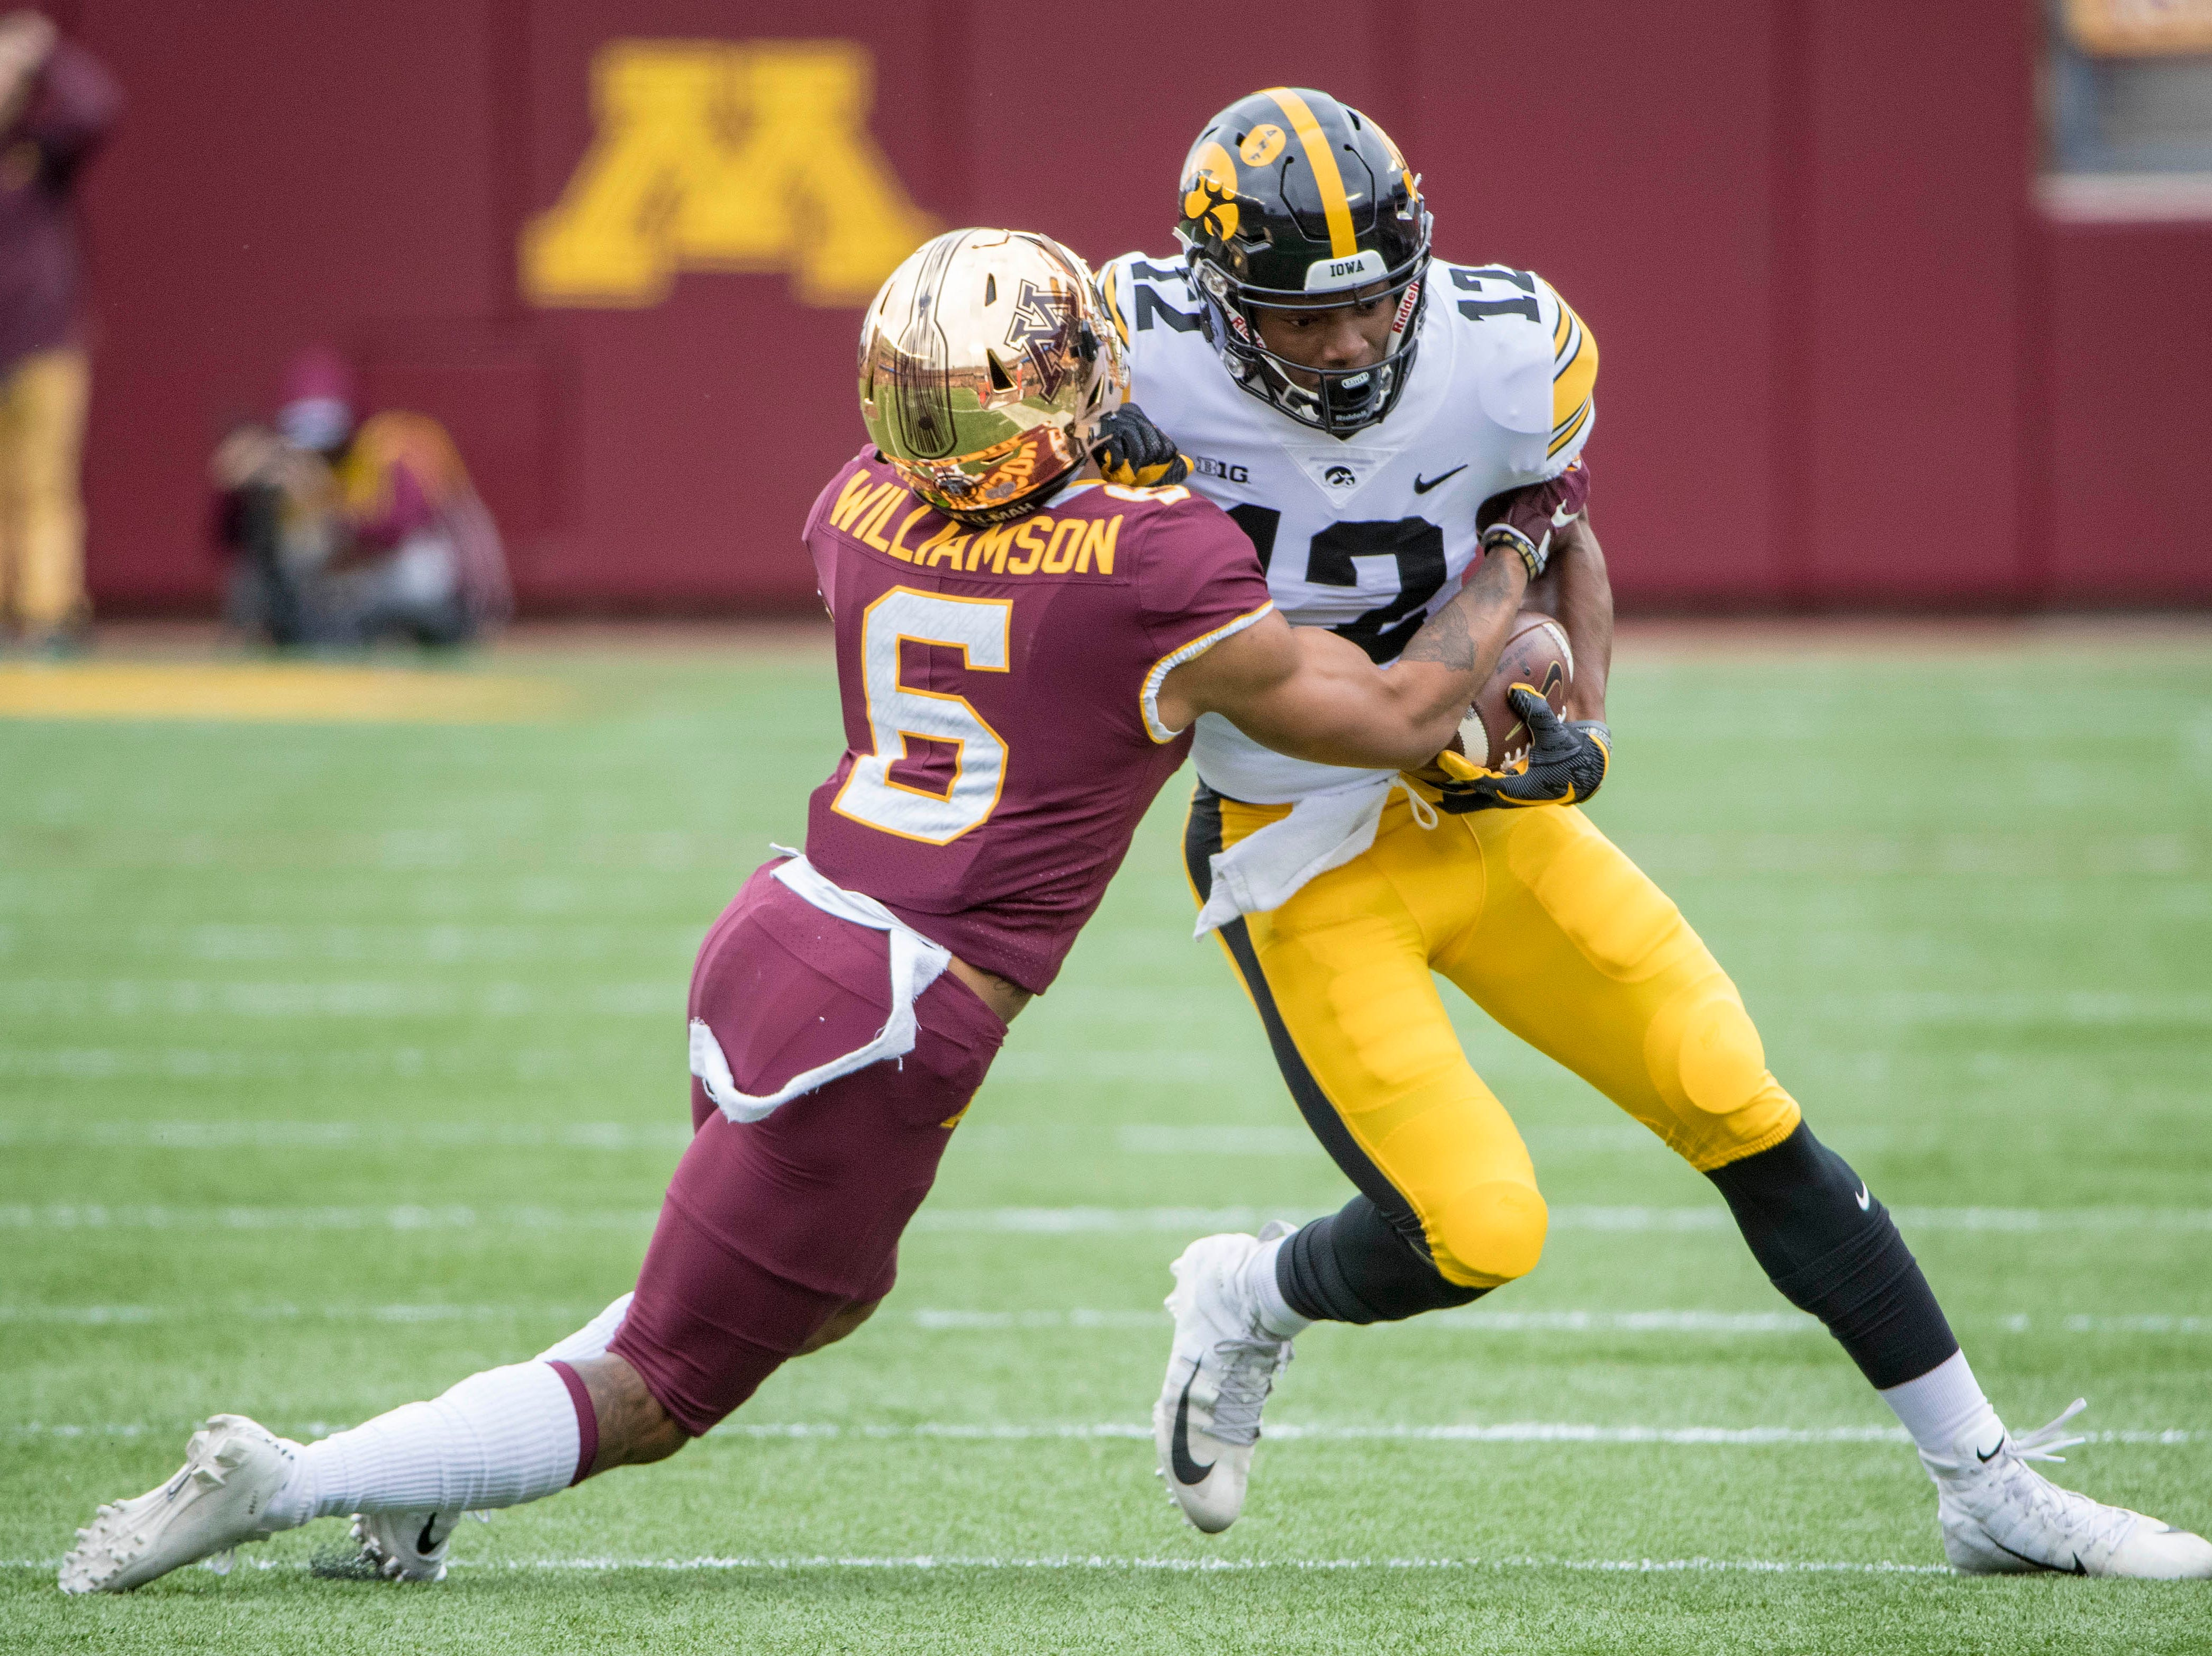 Oct 6, 2018; Minneapolis, MN, USA; Iowa Hawkeyes wide receiver Brandon Smith (12) pushes for a first down after catching a pass against Minnesota Golden Gophers defensive back Chris Williamson (6) in the first quarter at TCF Bank Stadium. Mandatory Credit: Jesse Johnson-USA TODAY Sports